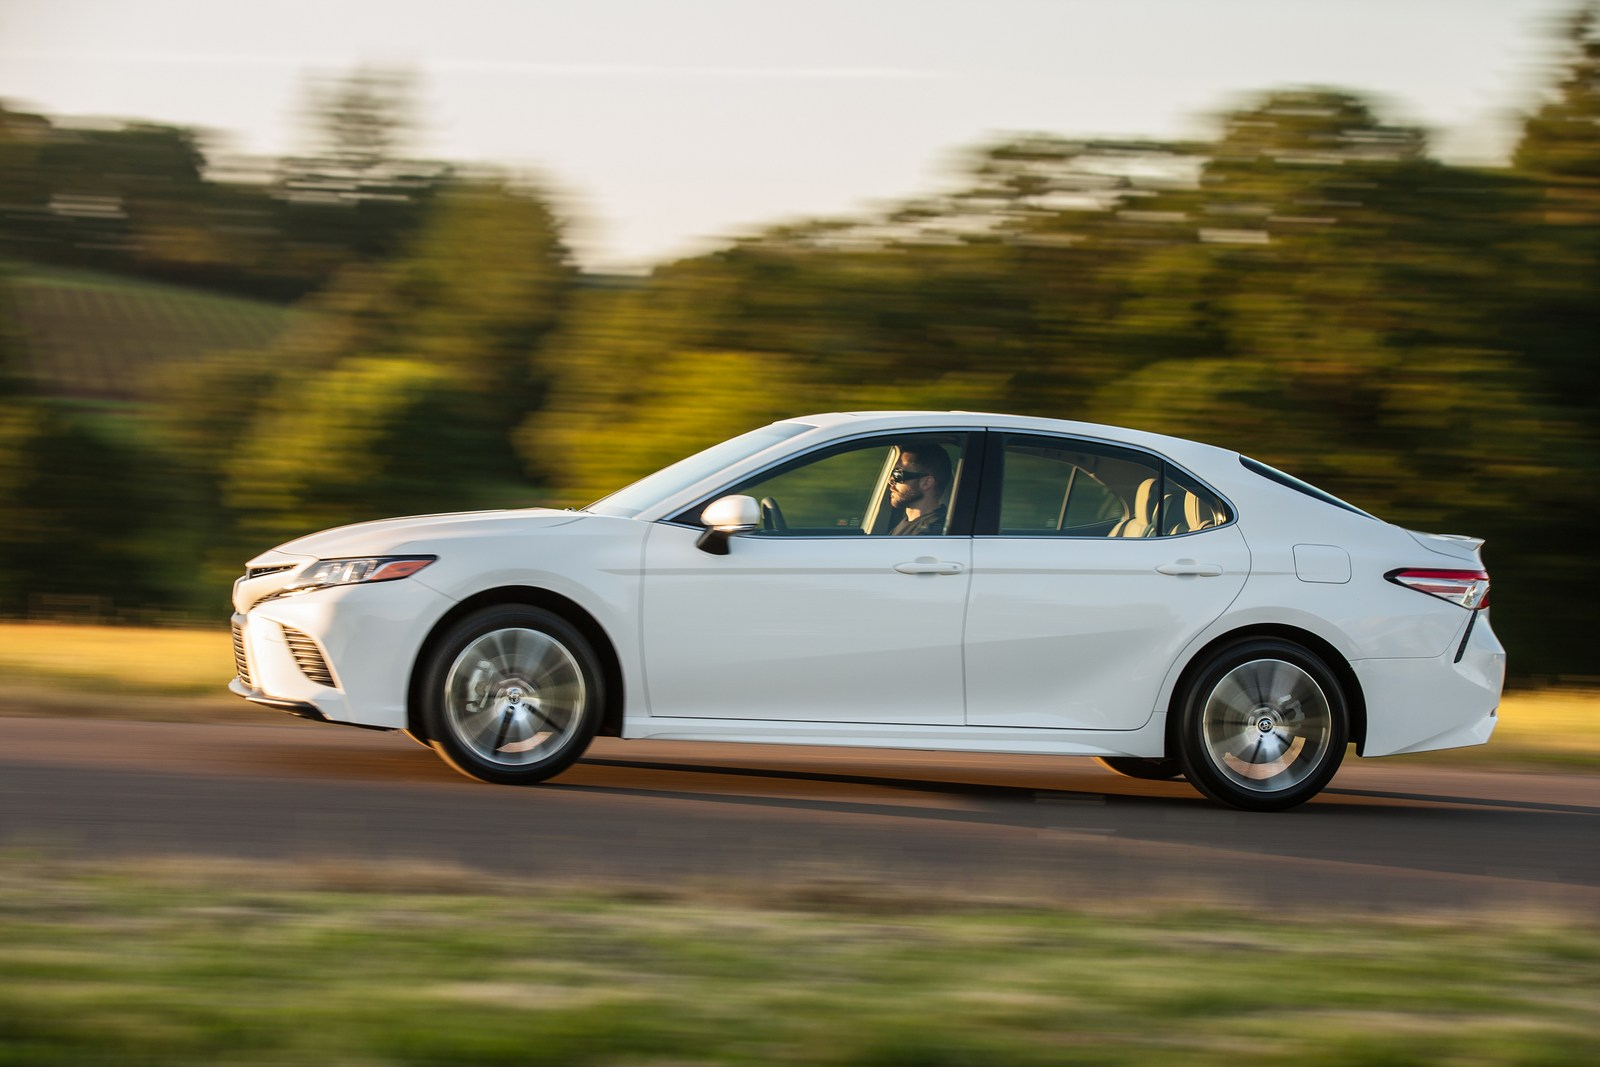 Accord Vs Camry >> 2018 Honda Accord Vs 2018 Toyota Camry: Let The Battle Begin | Carscoops